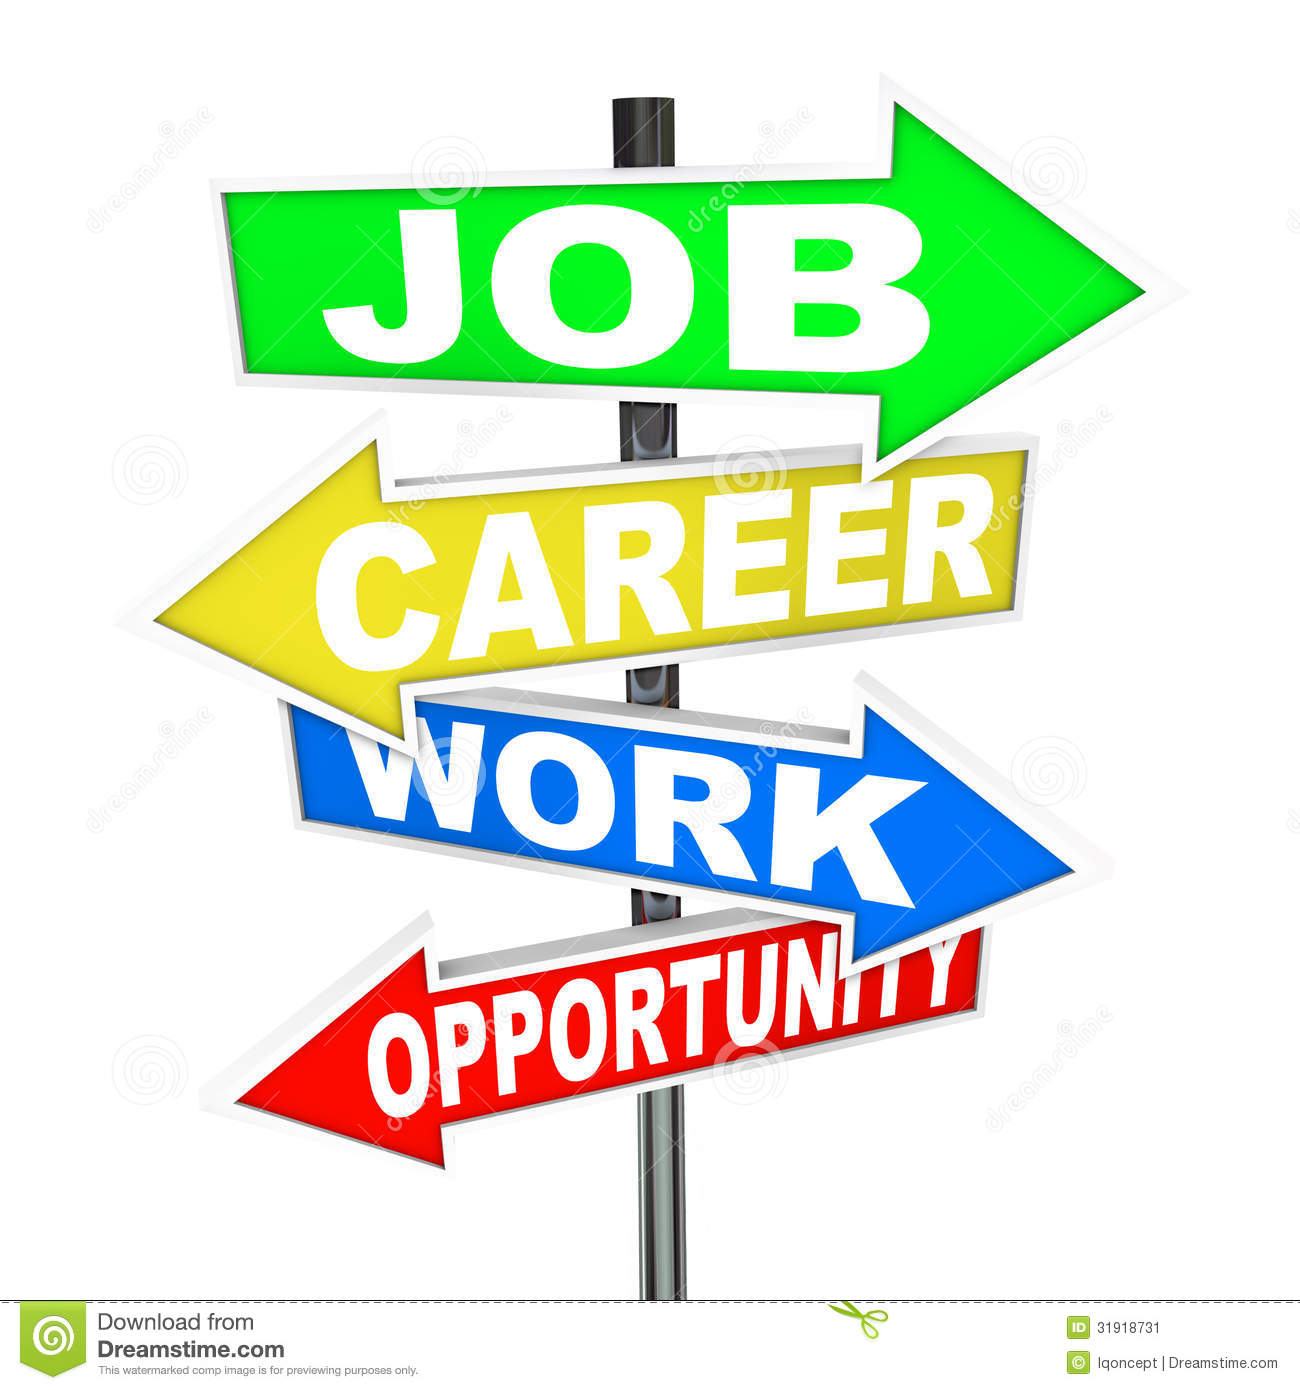 Job Career Work Opportunity Words Road Signs Stock Image - Image ...